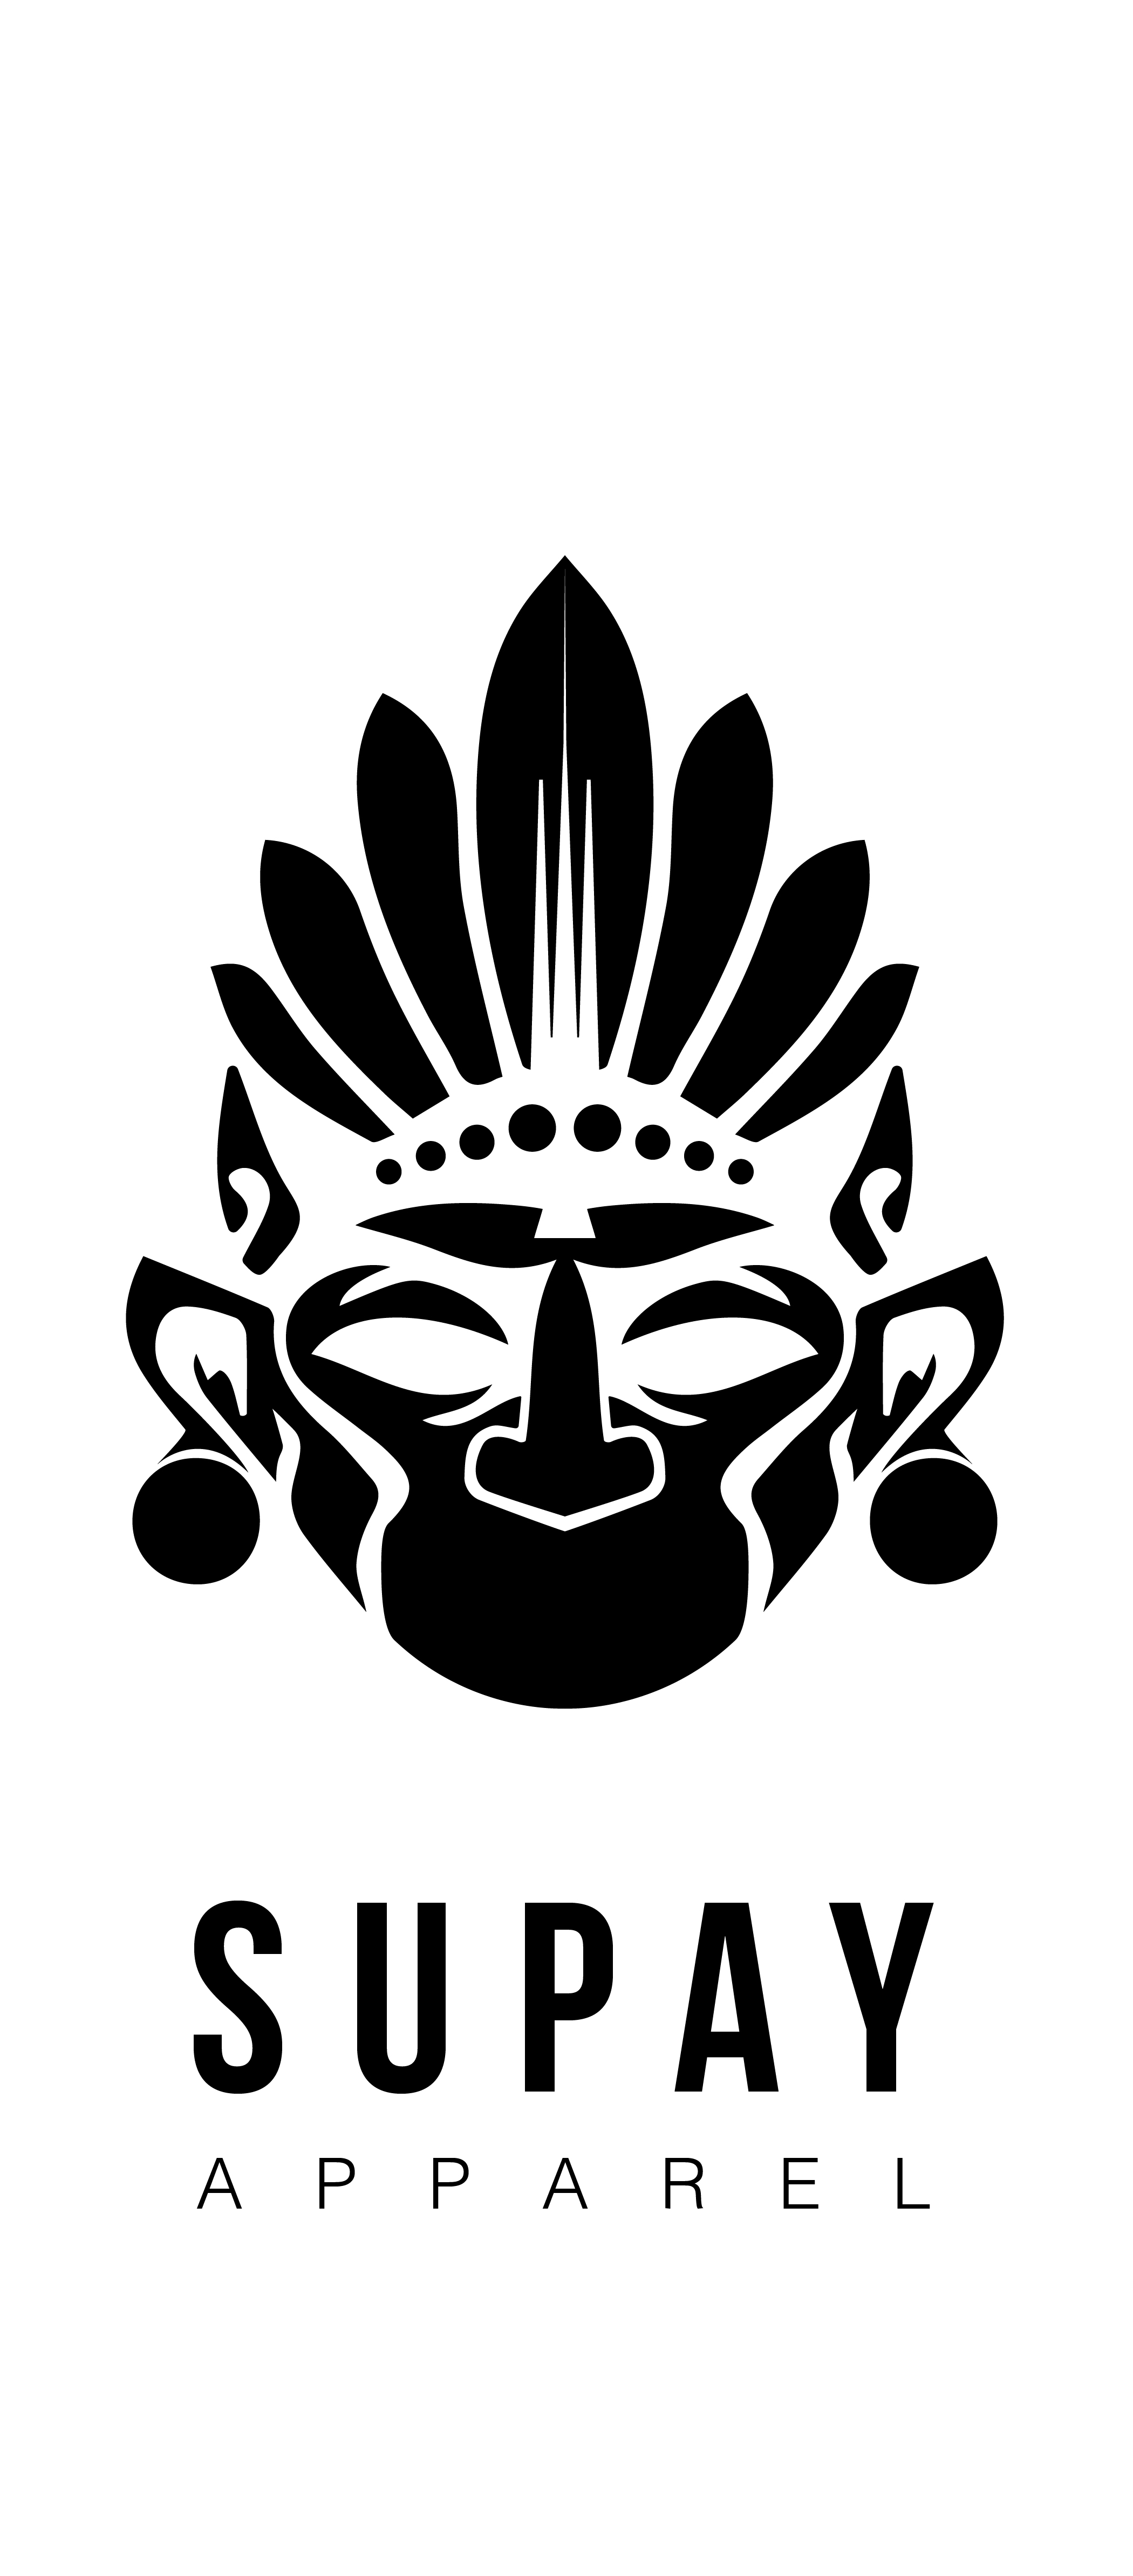 Supay Apparel Logo Design - This logo was created for a NYC apparel company. It was inspired by Incan and Aztec drawings, pottery and art.